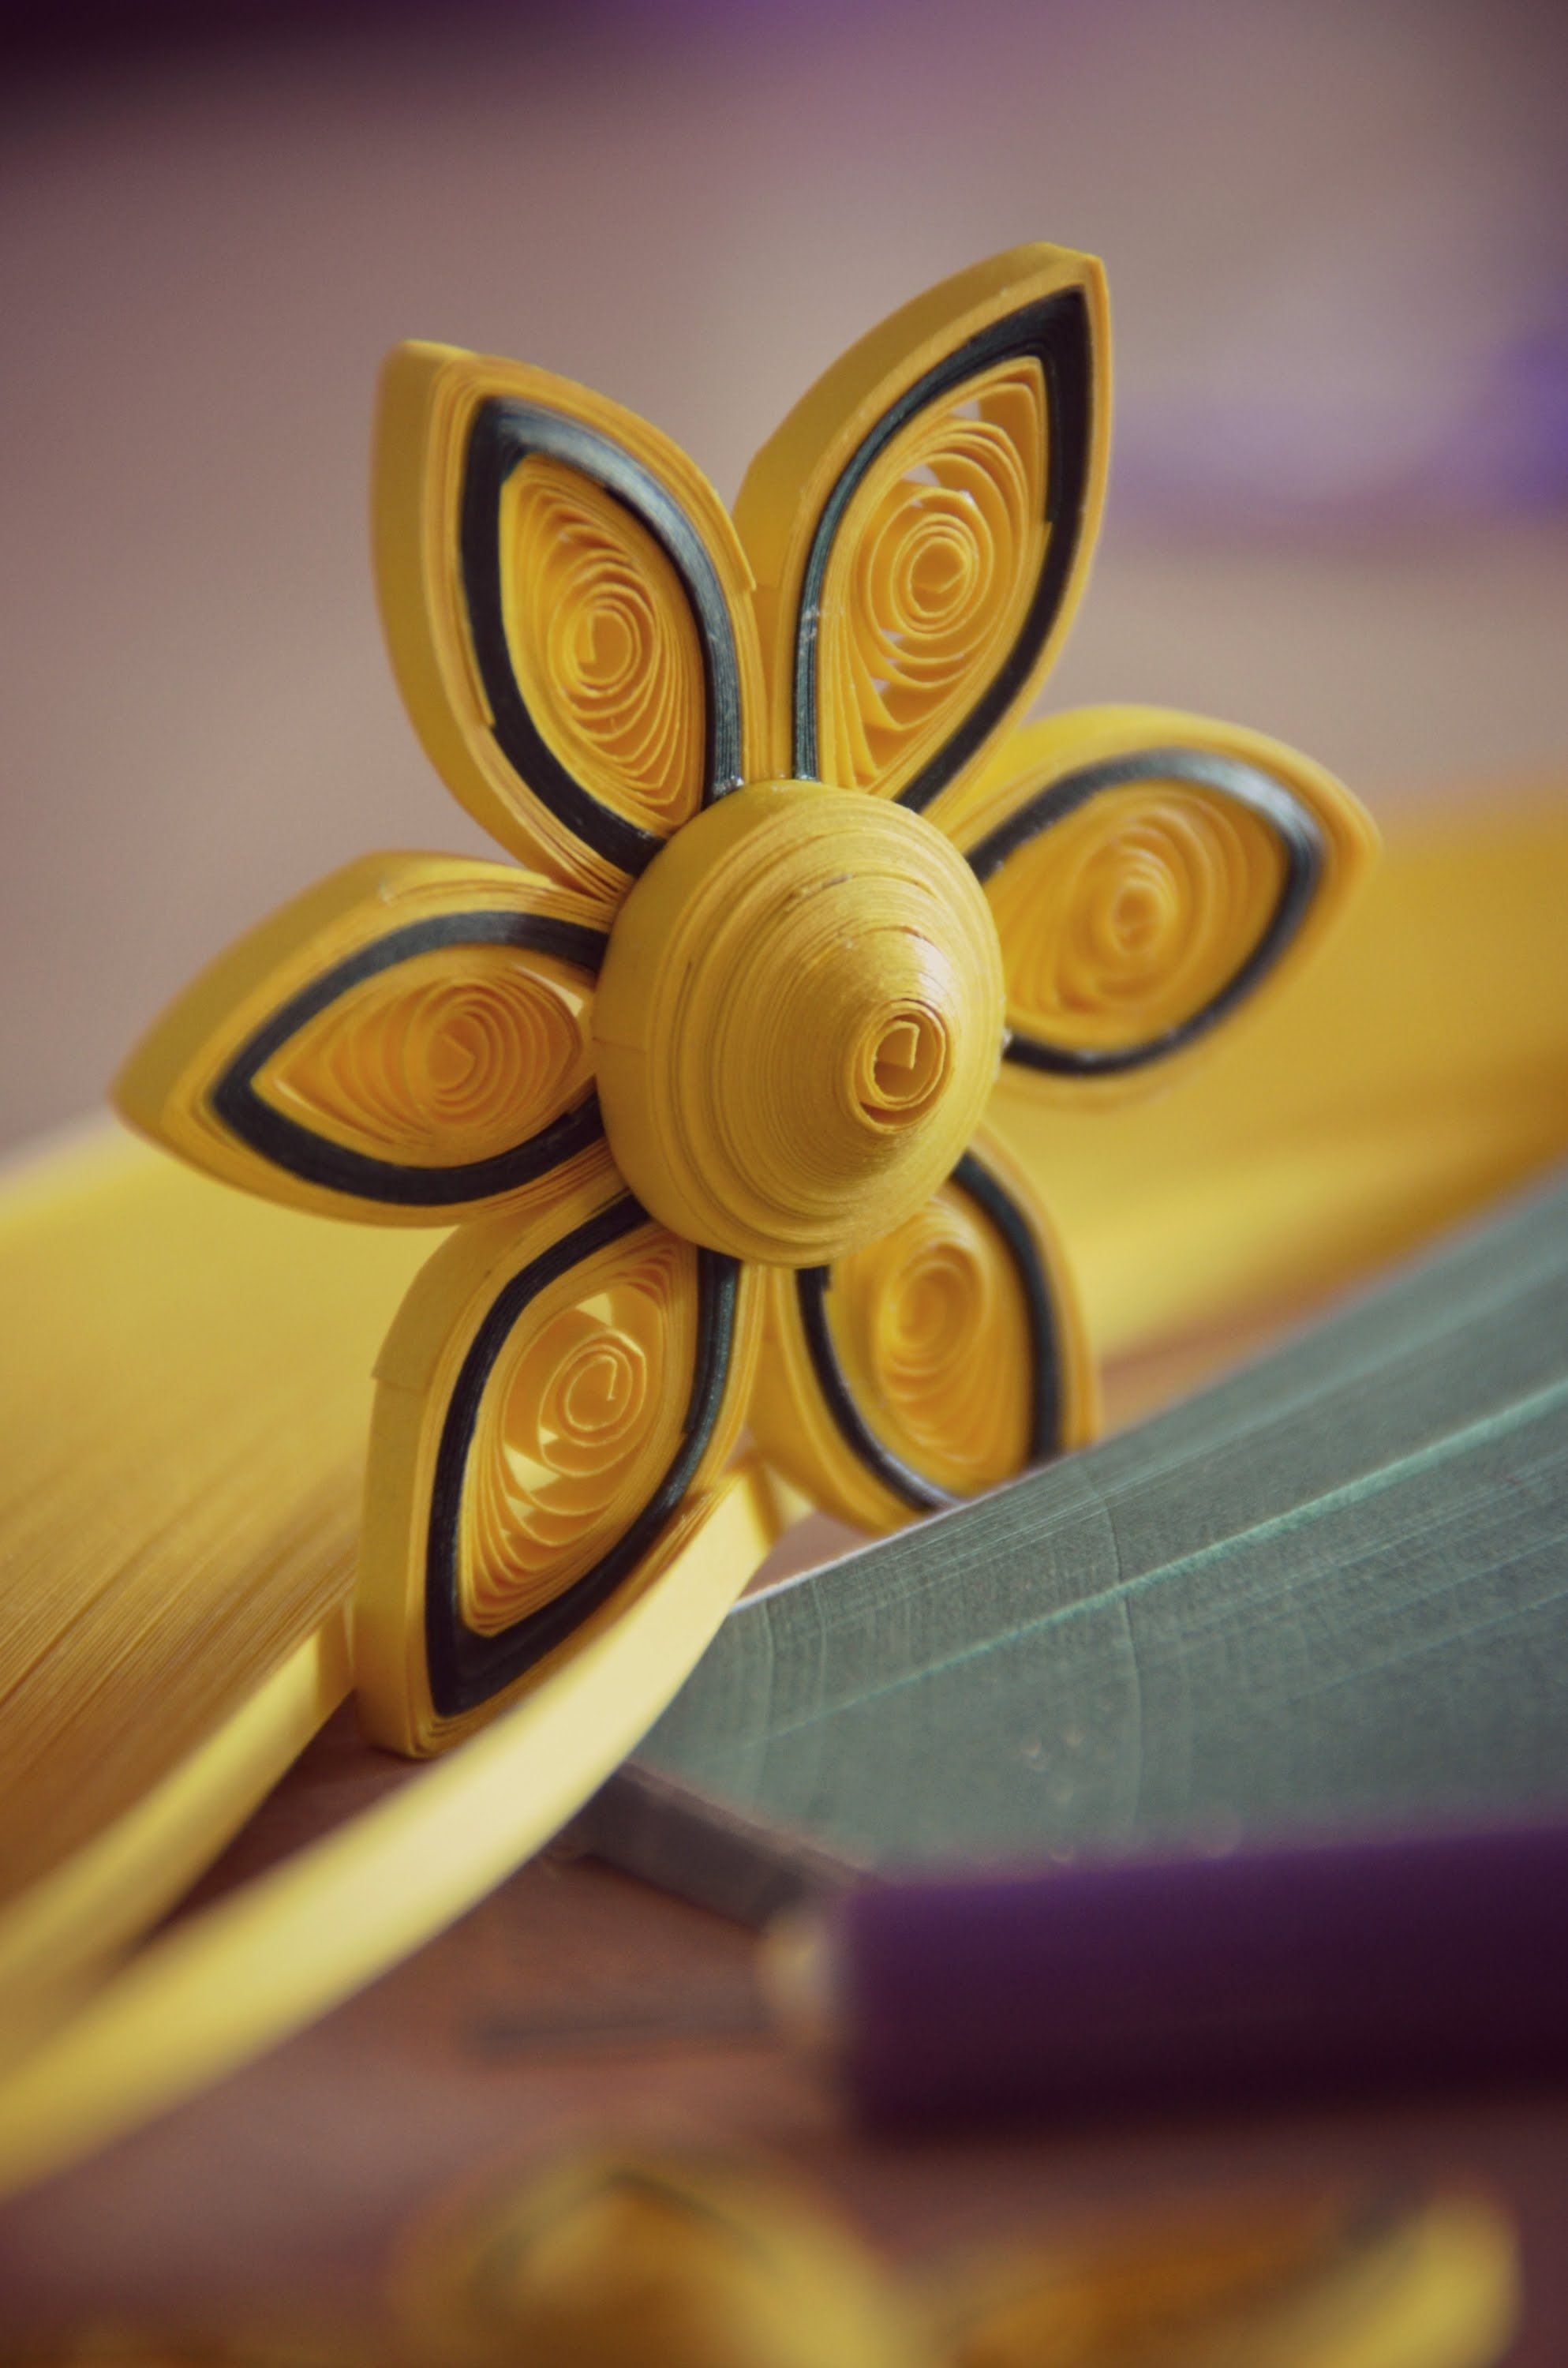 A Simple Quilling Design Easy To Make Yet Beautiful To Use In